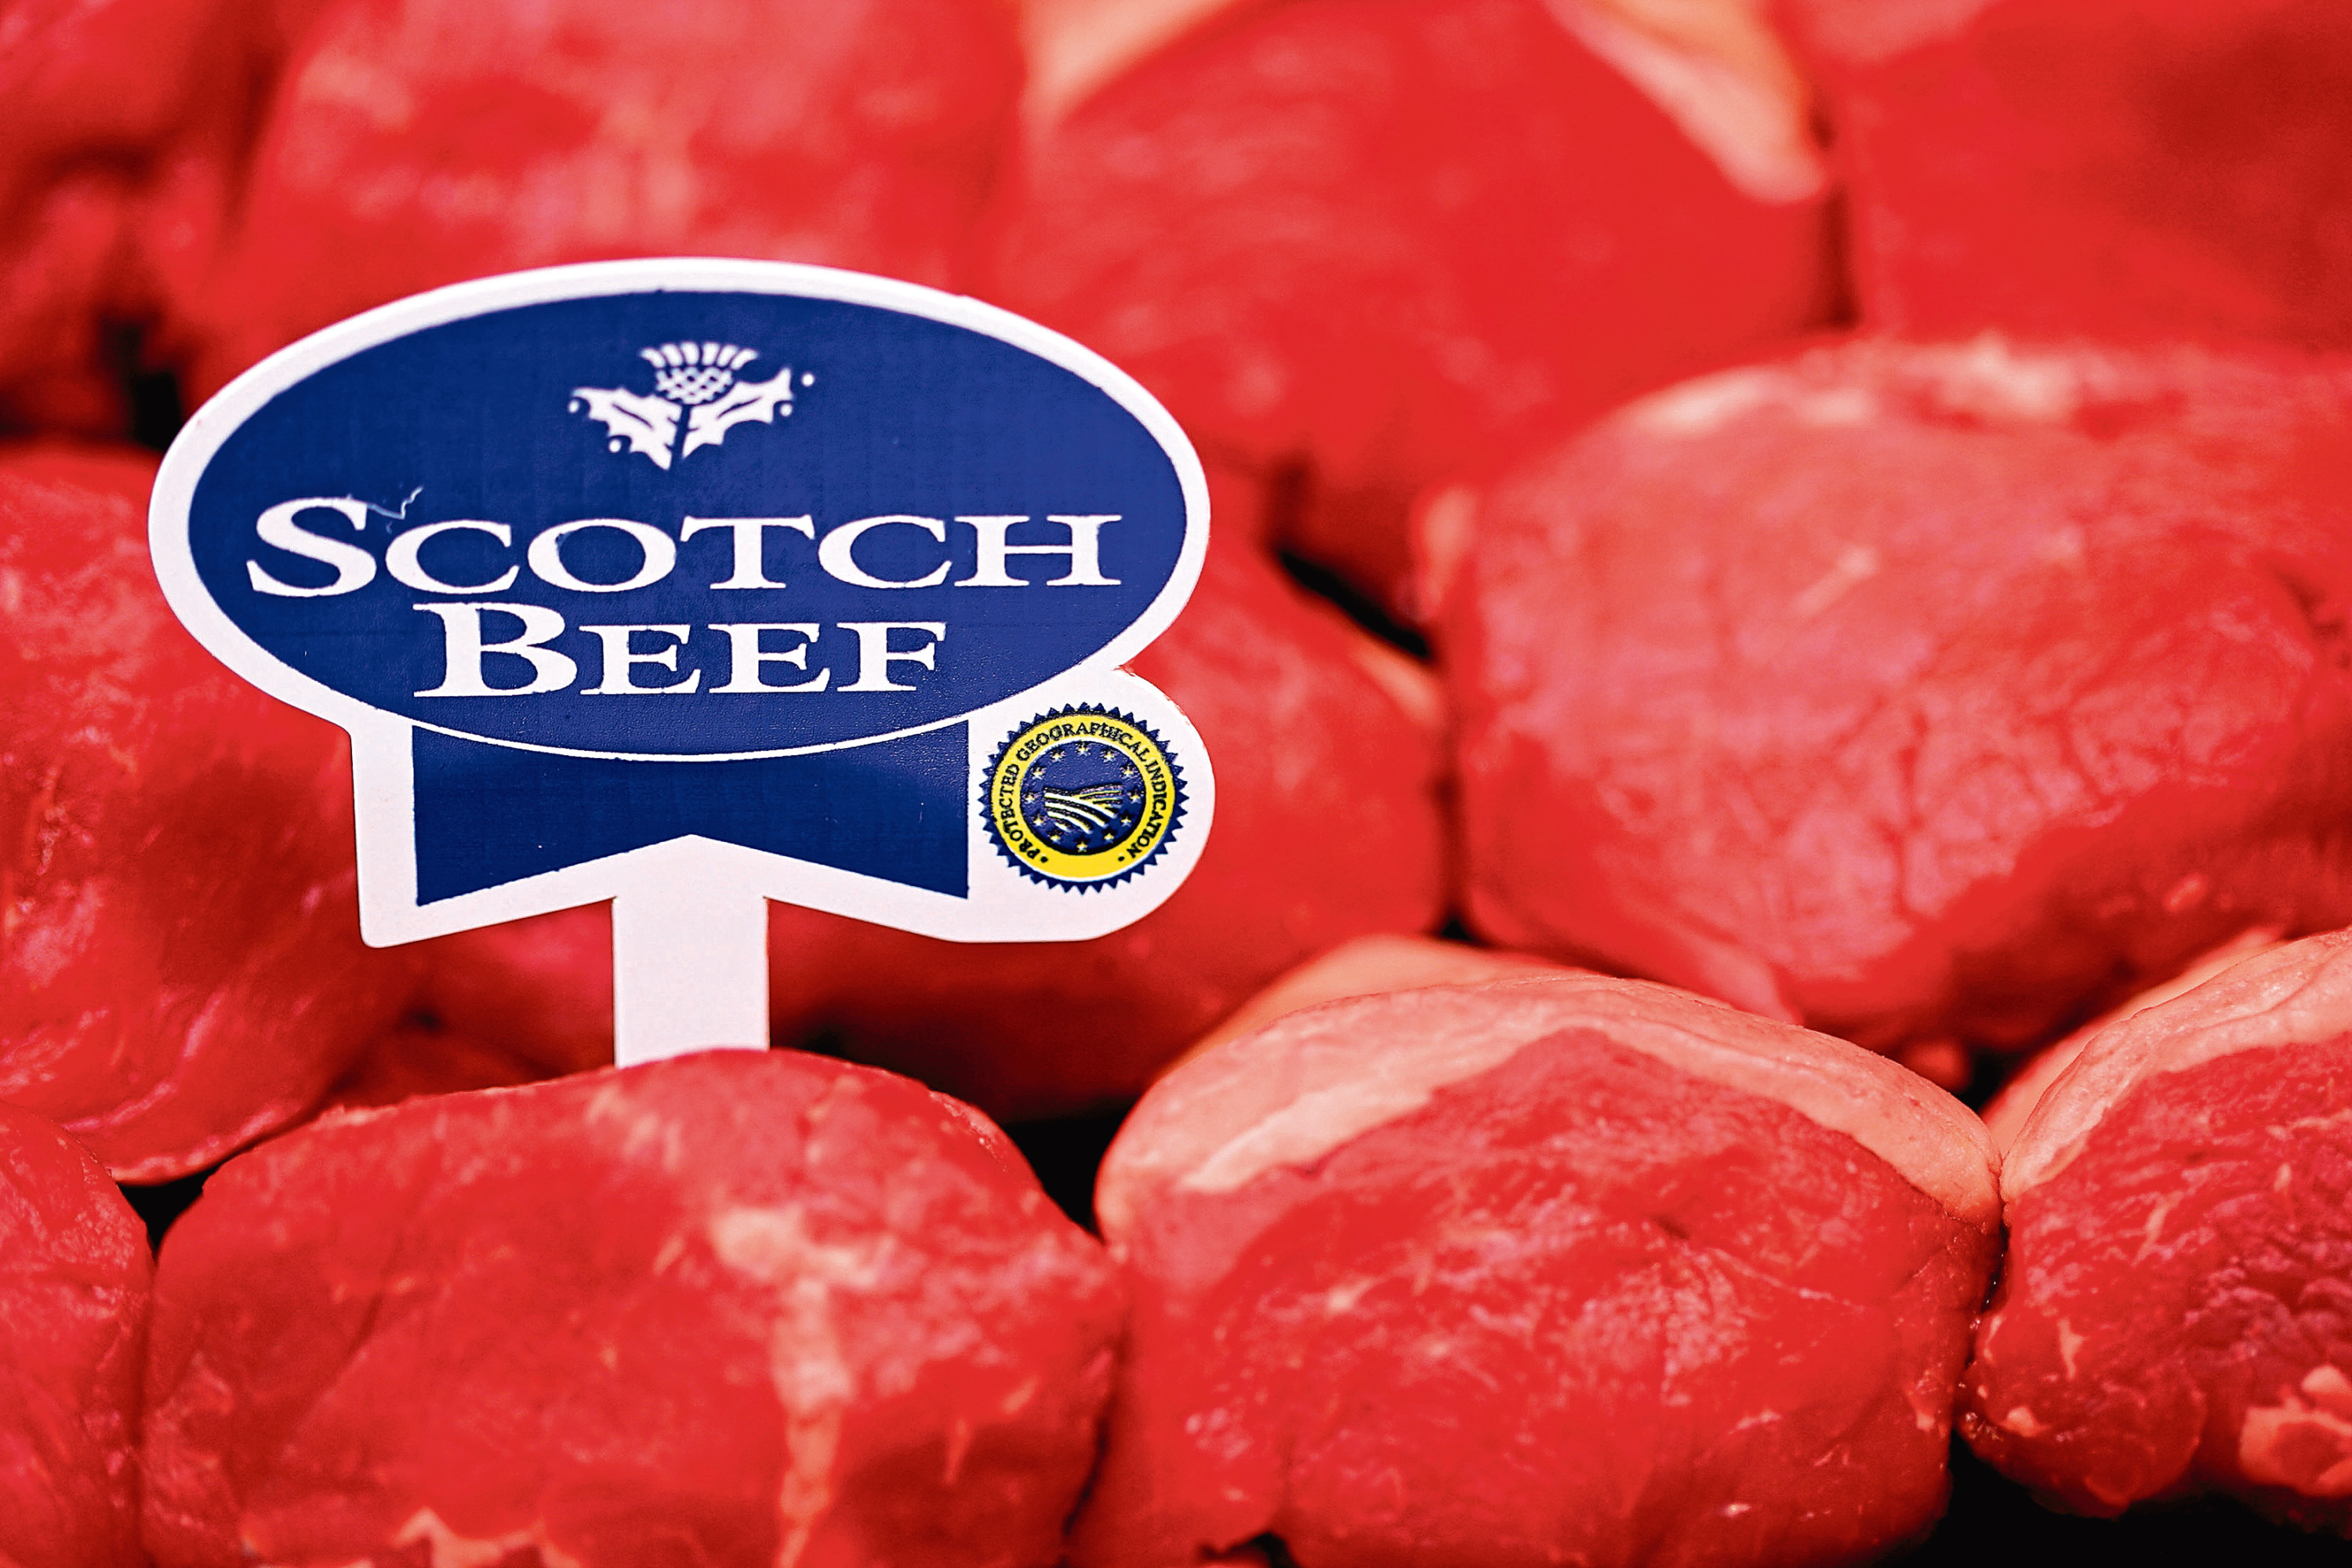 Quality Meat Scotland, which promotes Scotch Beef, is involved in the campaign.